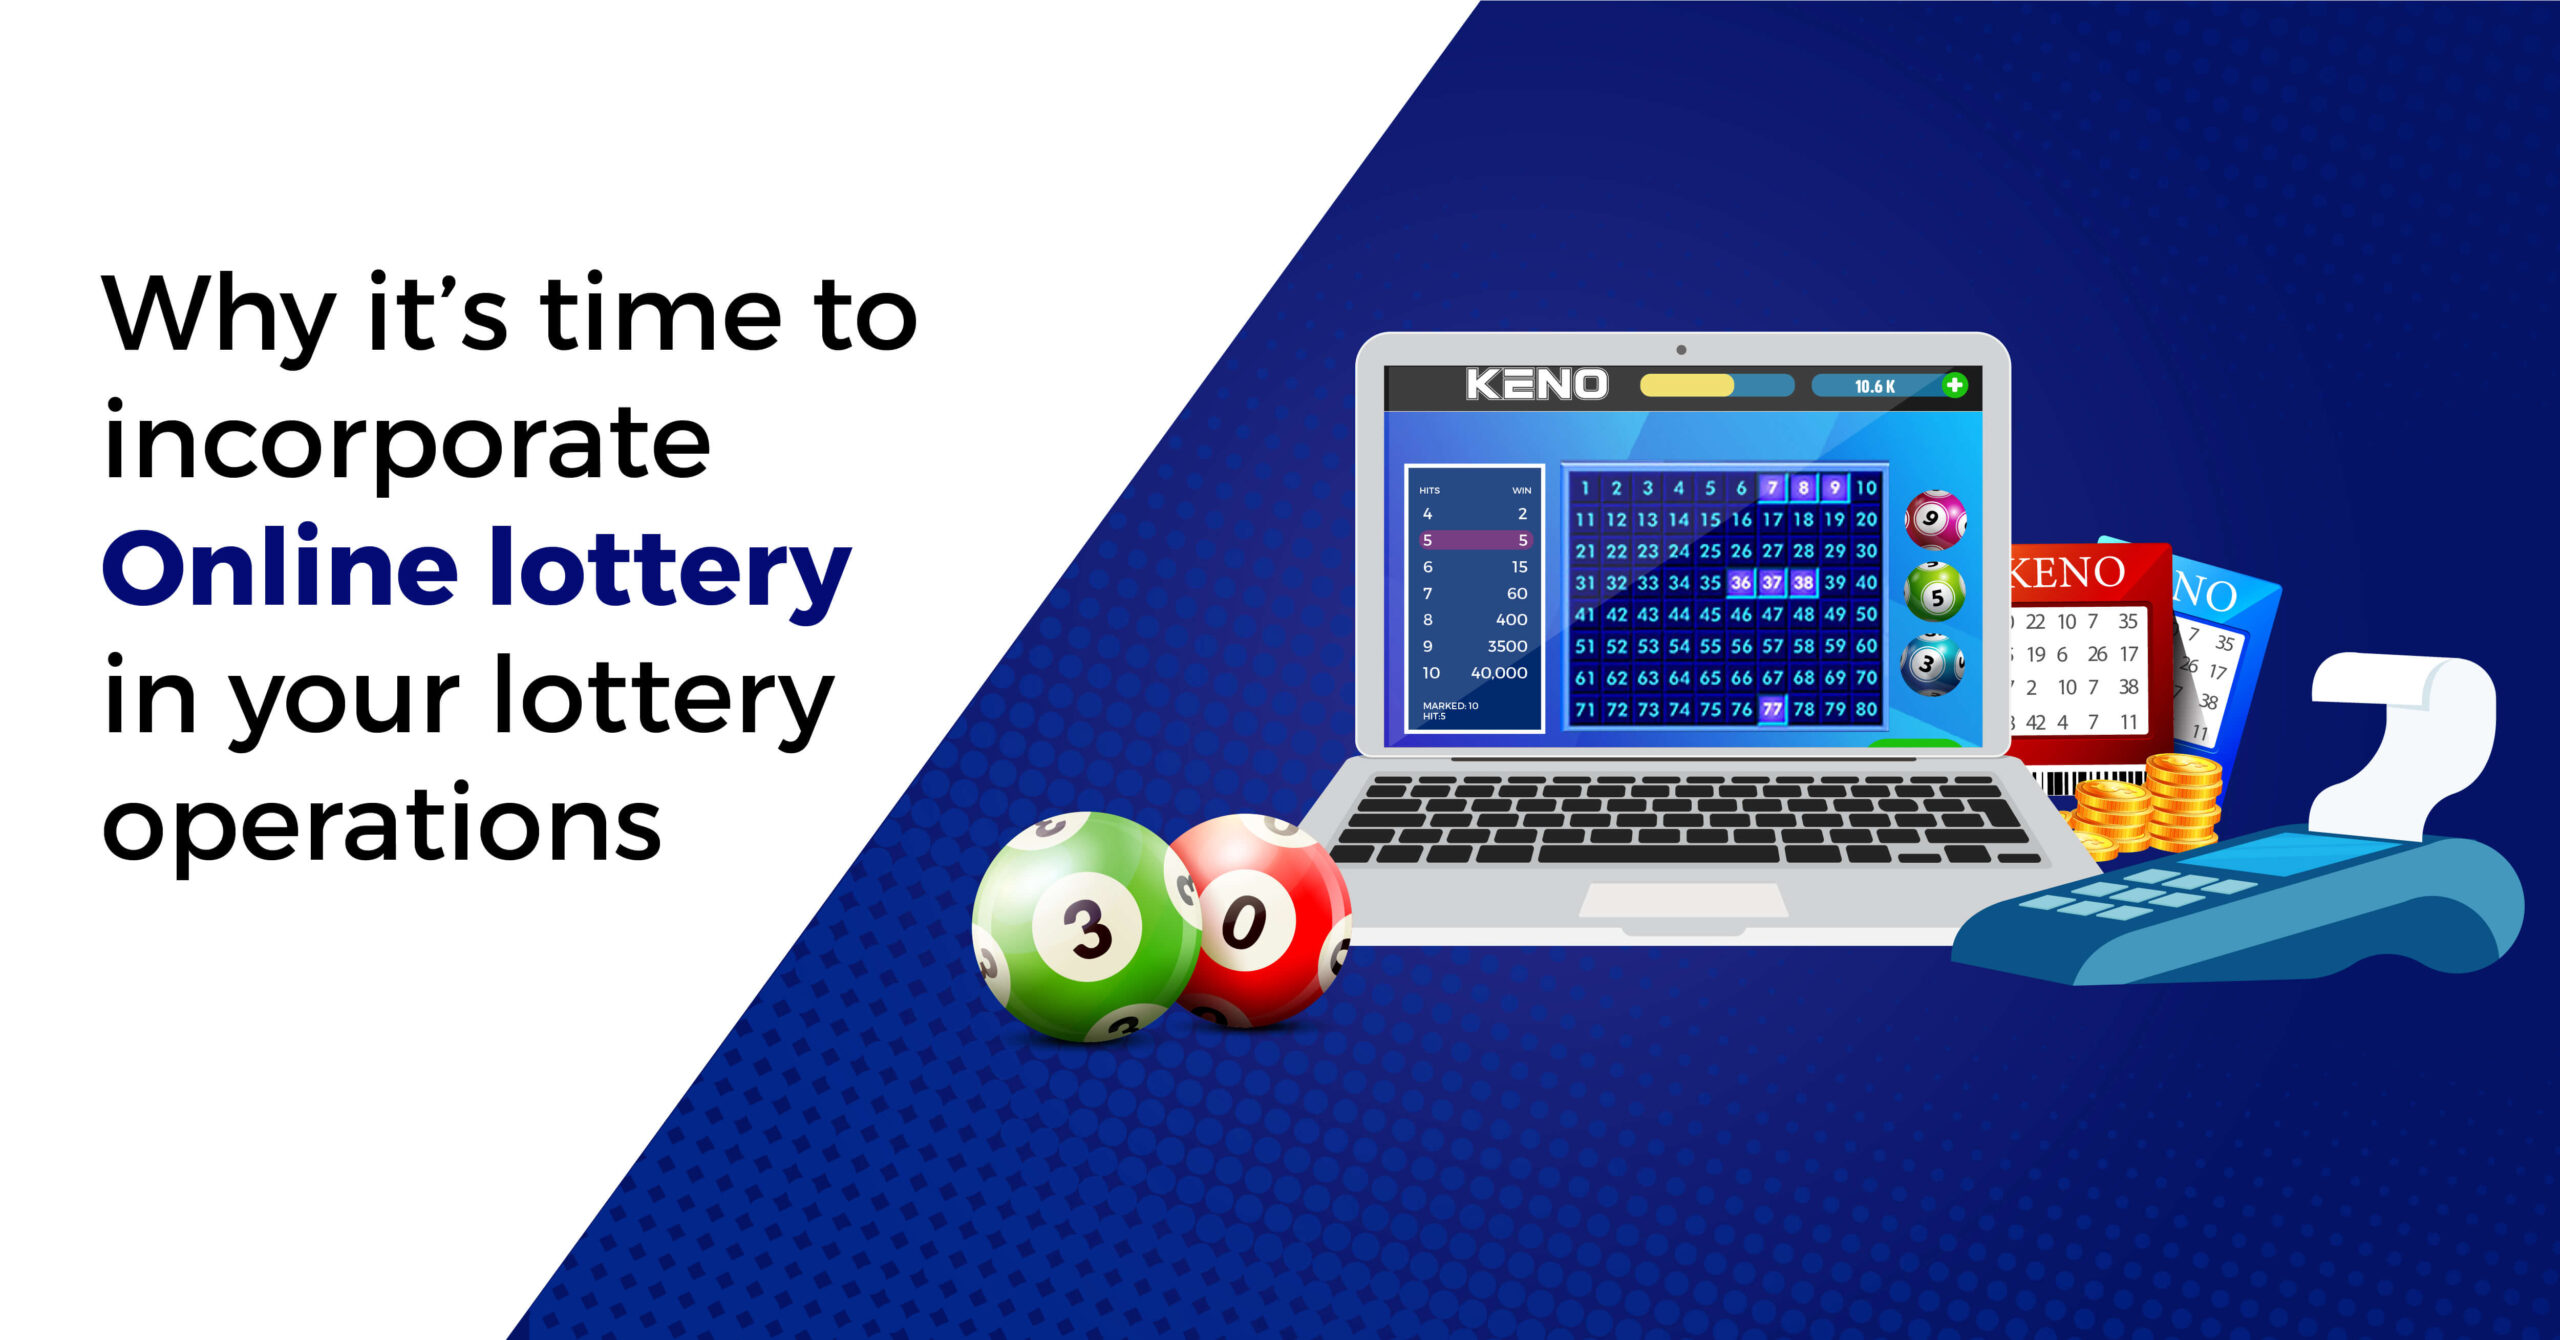 Why it's time to incorporate online lottery in your lottery operations